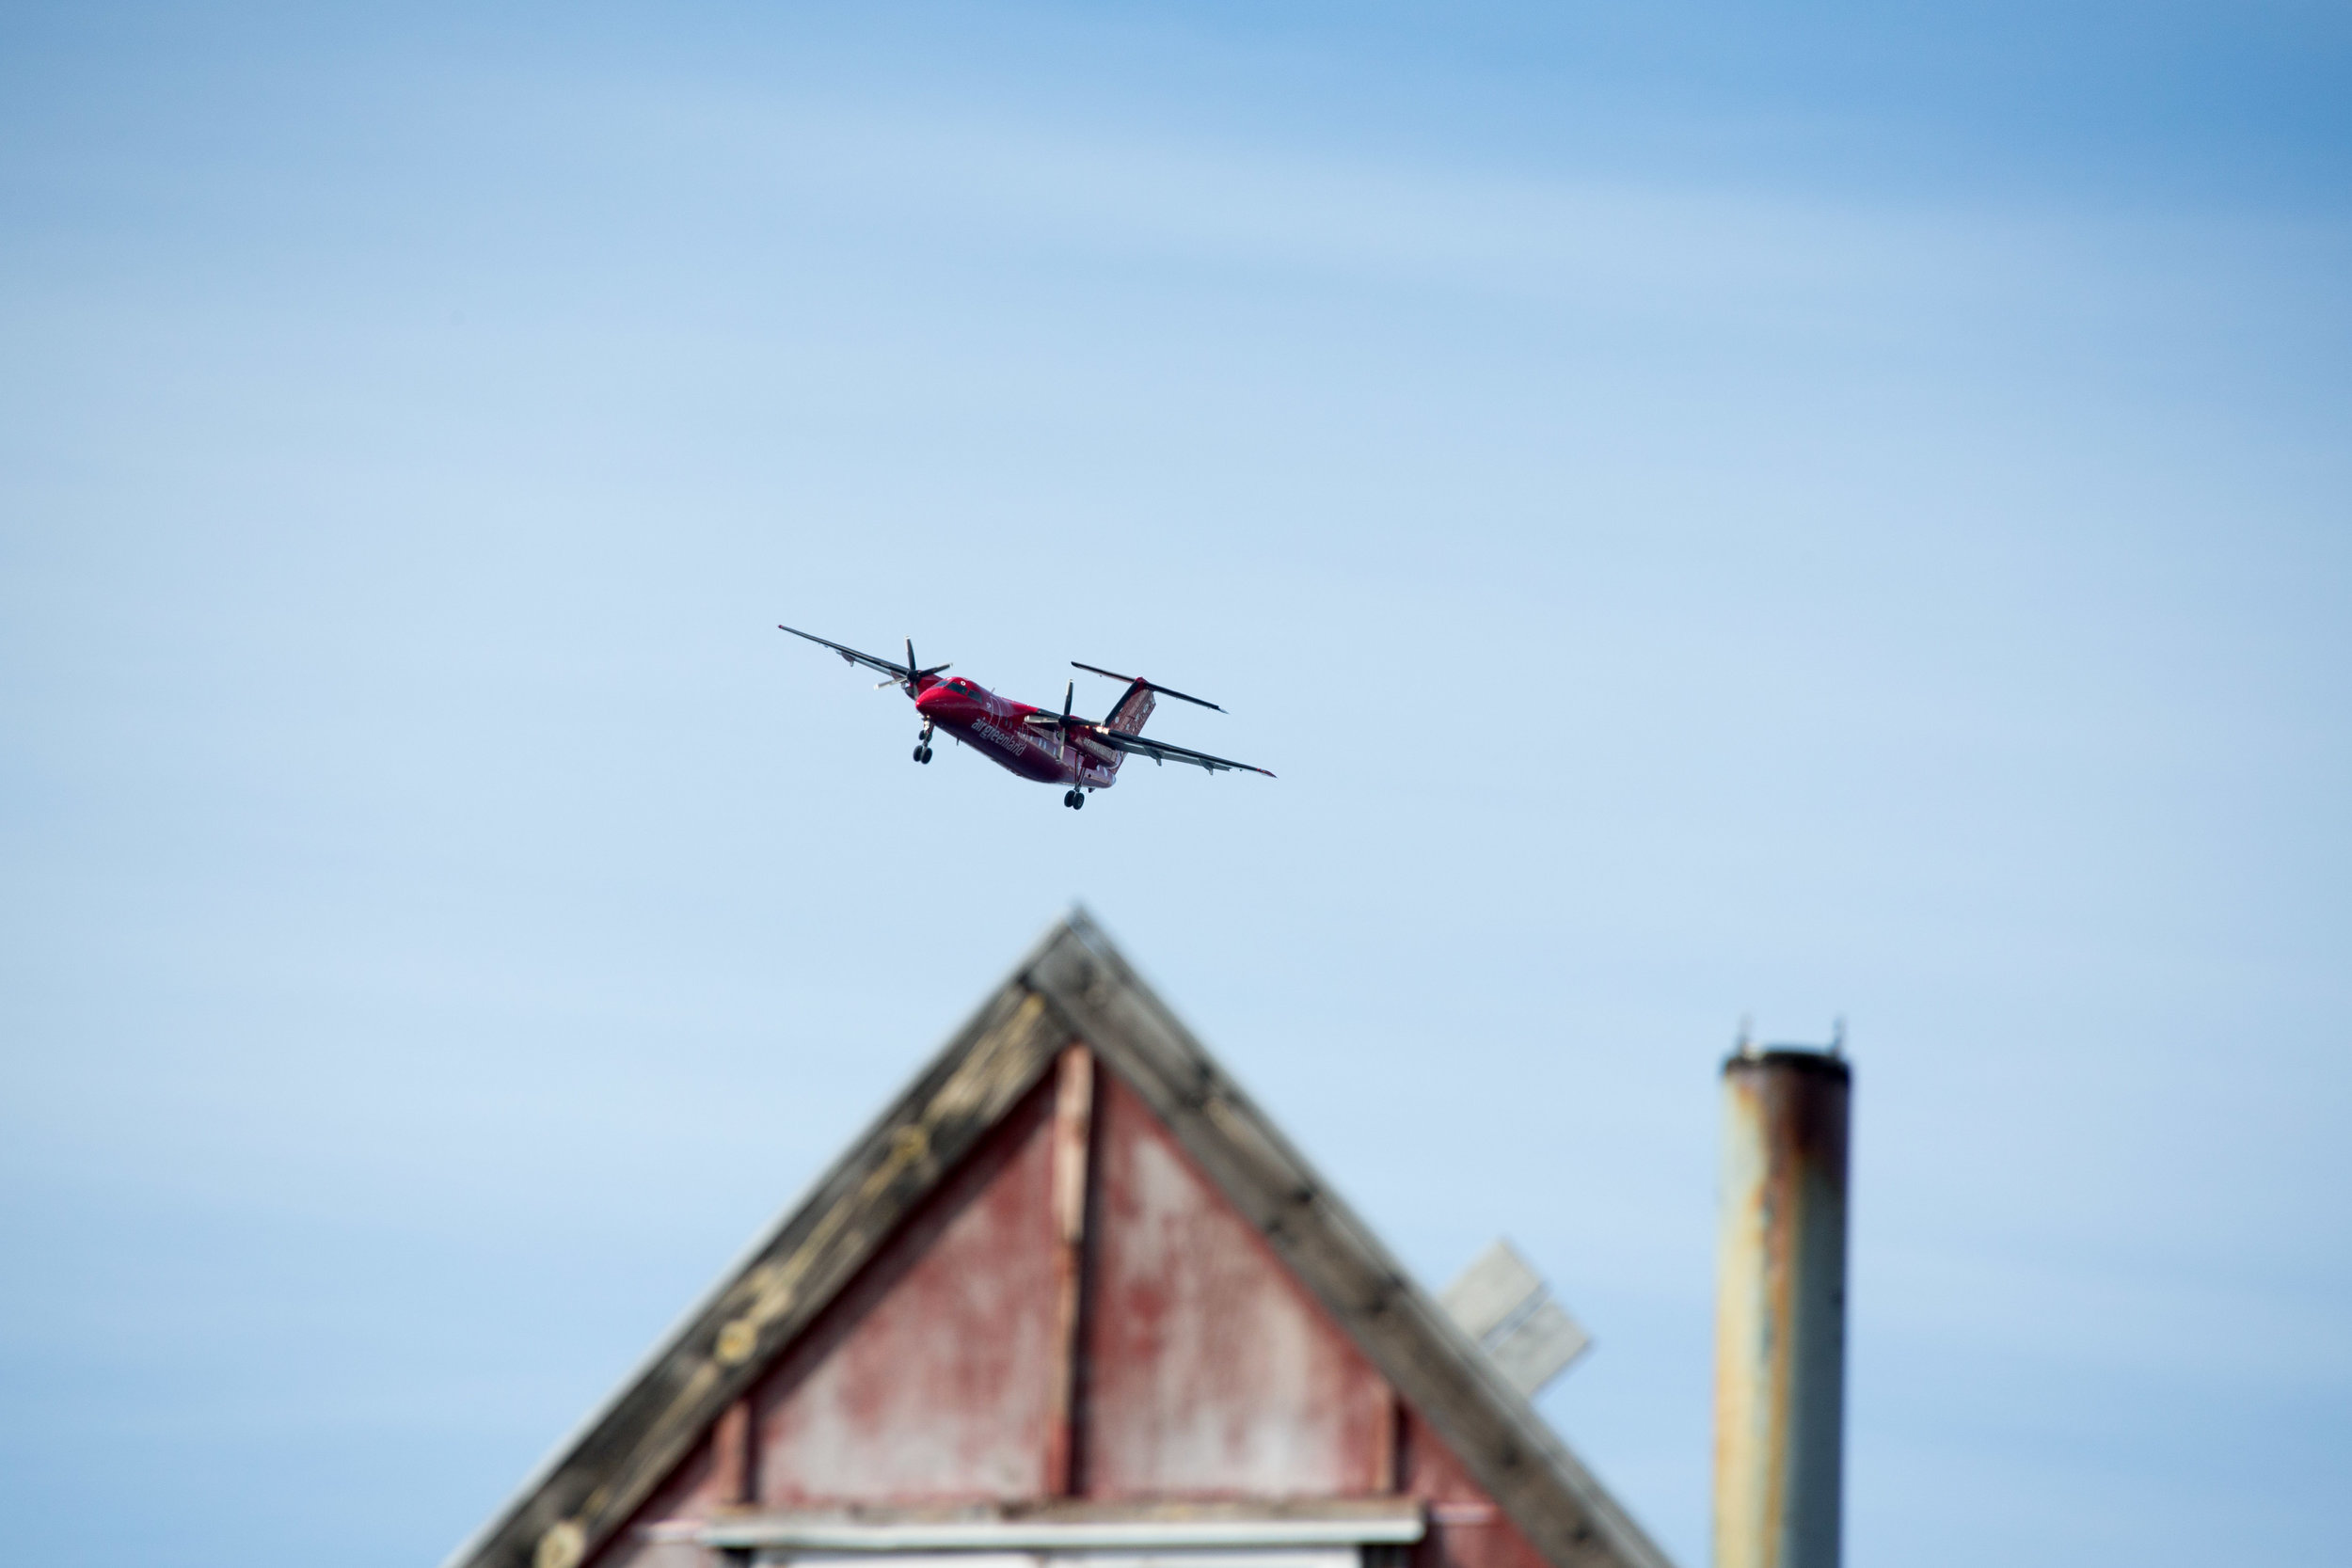 An Air Greenland flight approaches Kulusuk airport from Nuuk, Greenland.